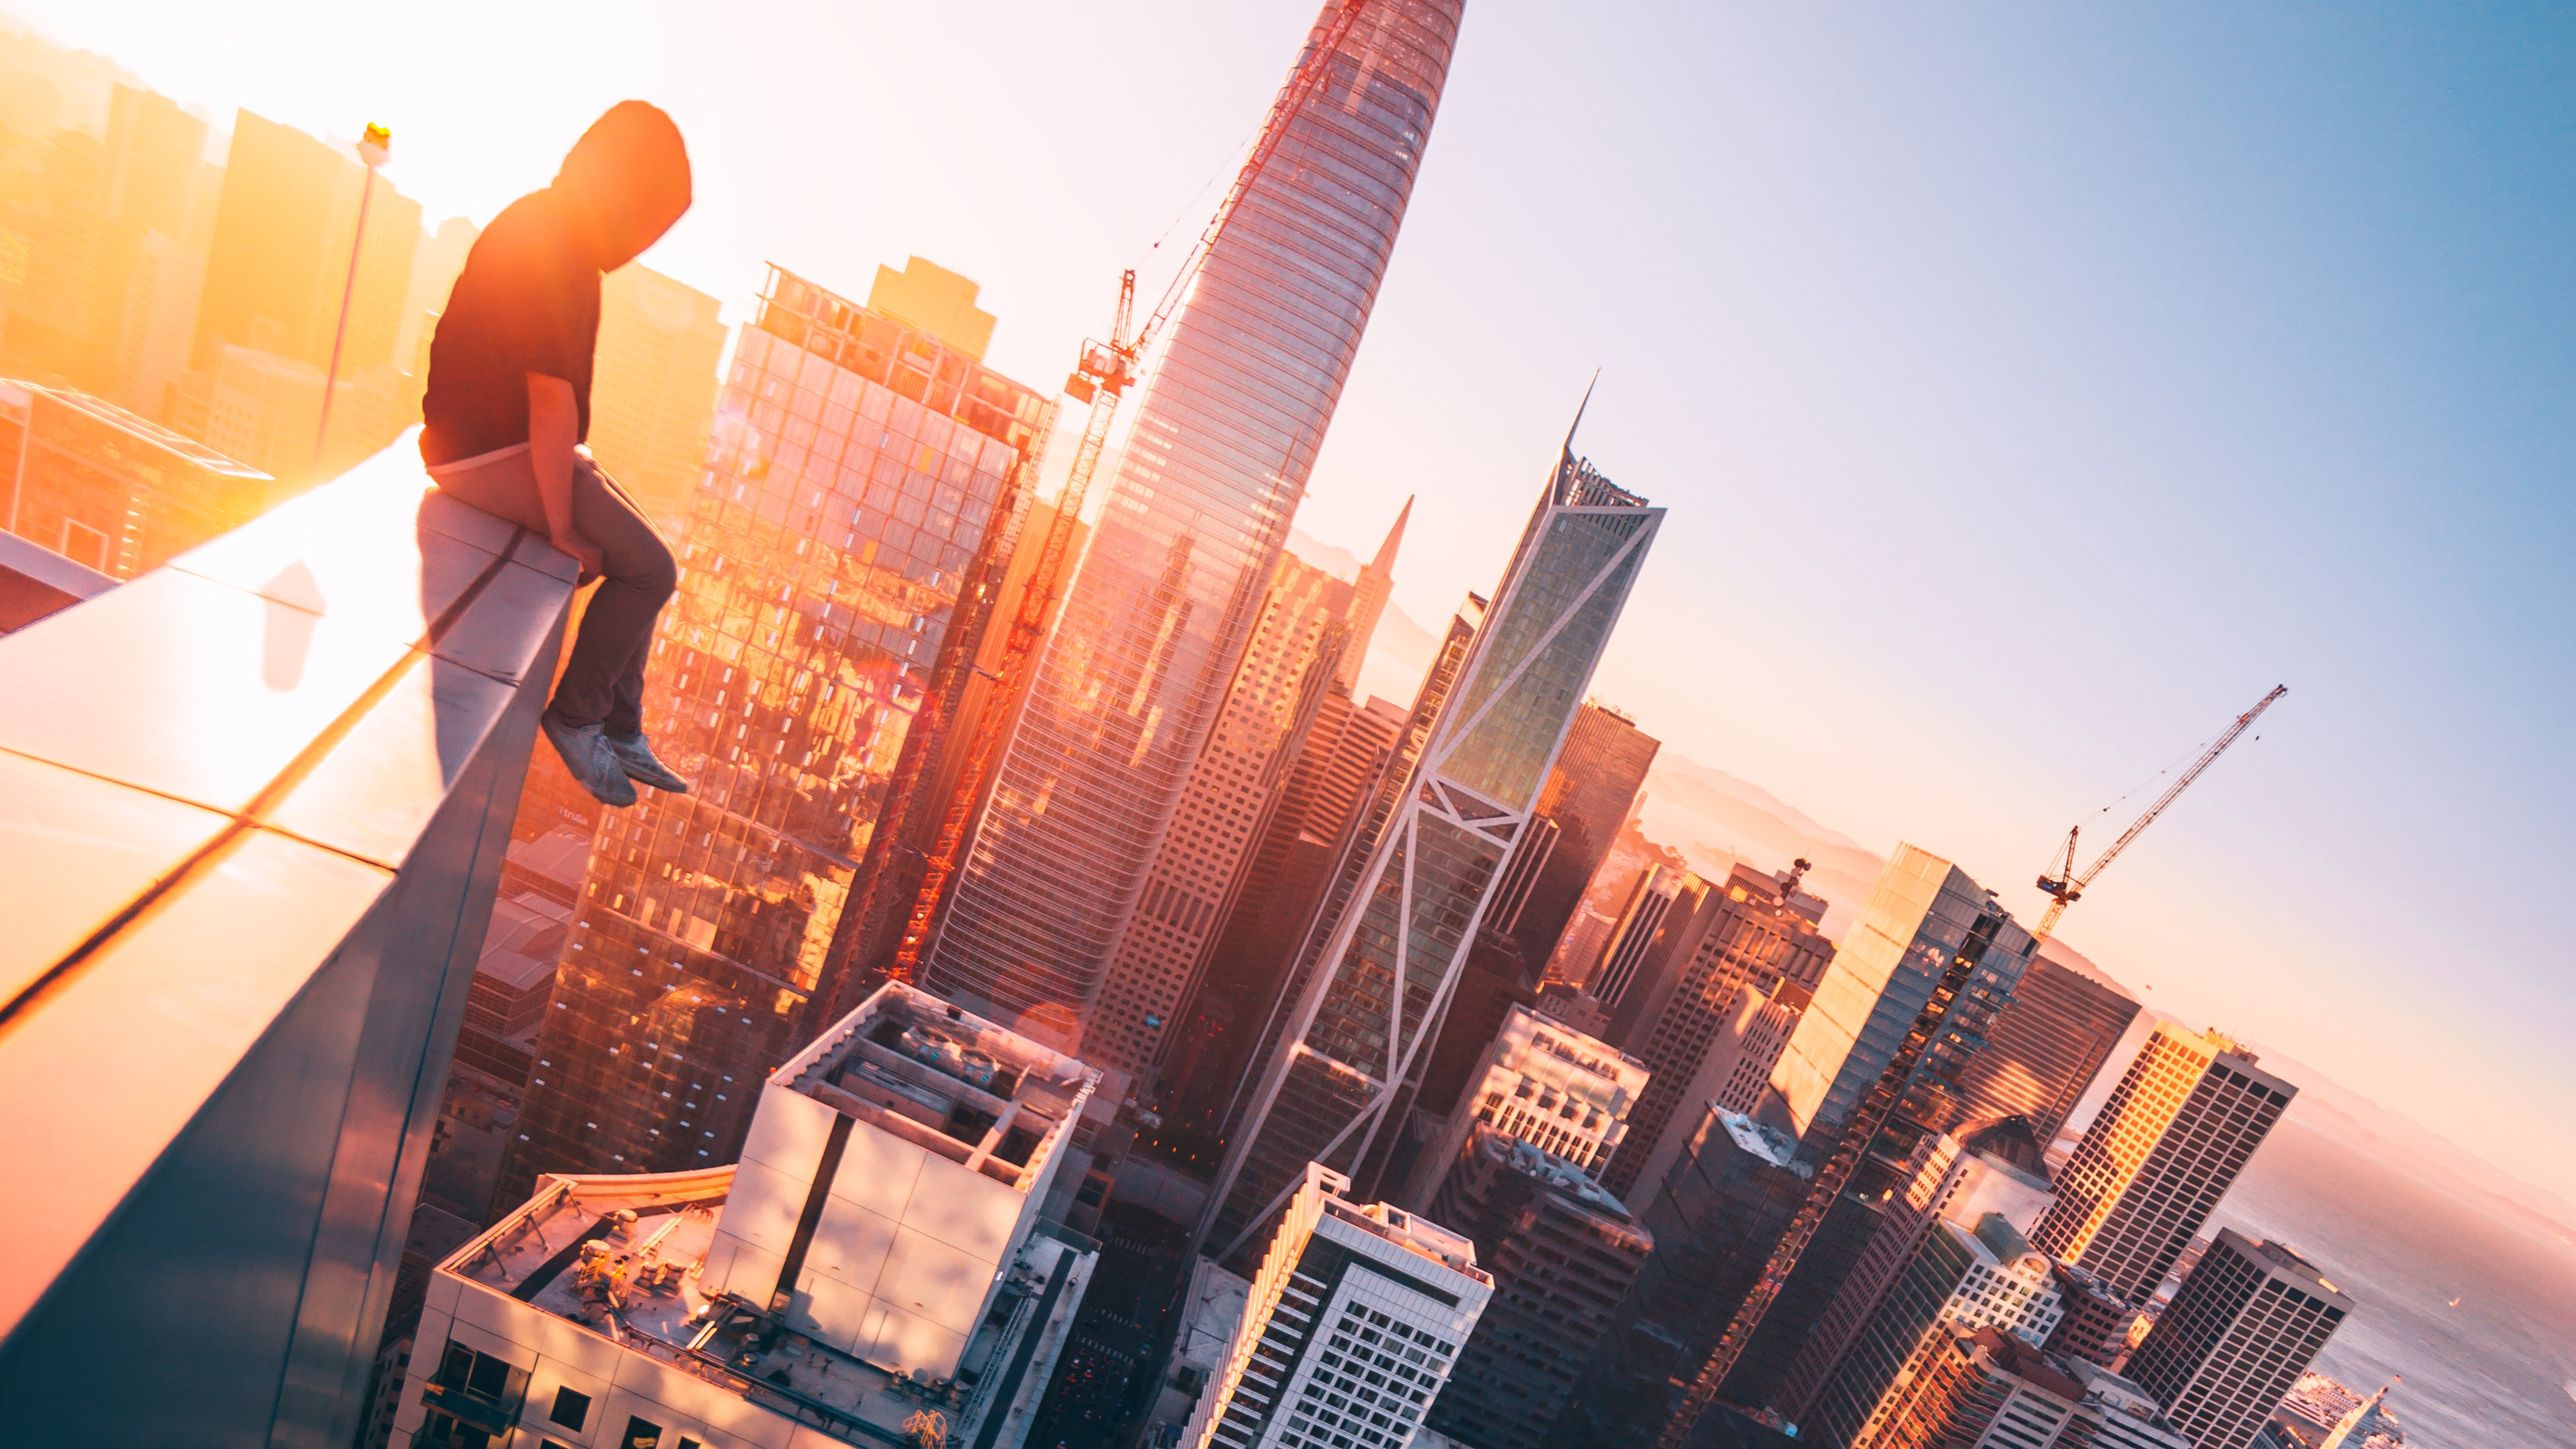 a person sitting on the top of a tall building hd photography 4k